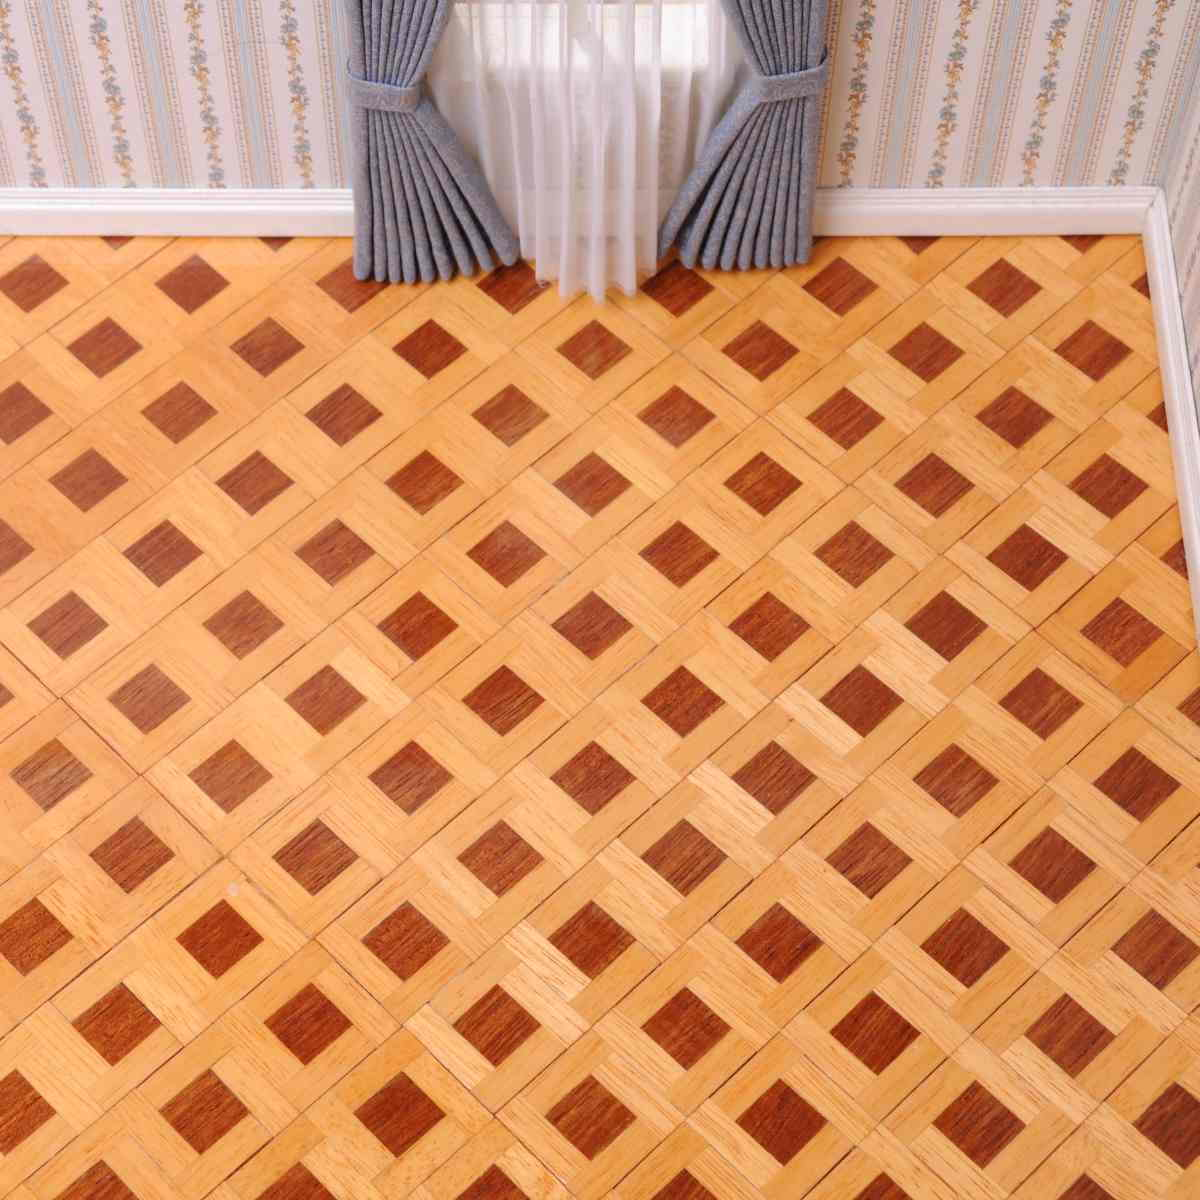 Square pattern parquet floor 正方形タイプ・寄せ木張りの床